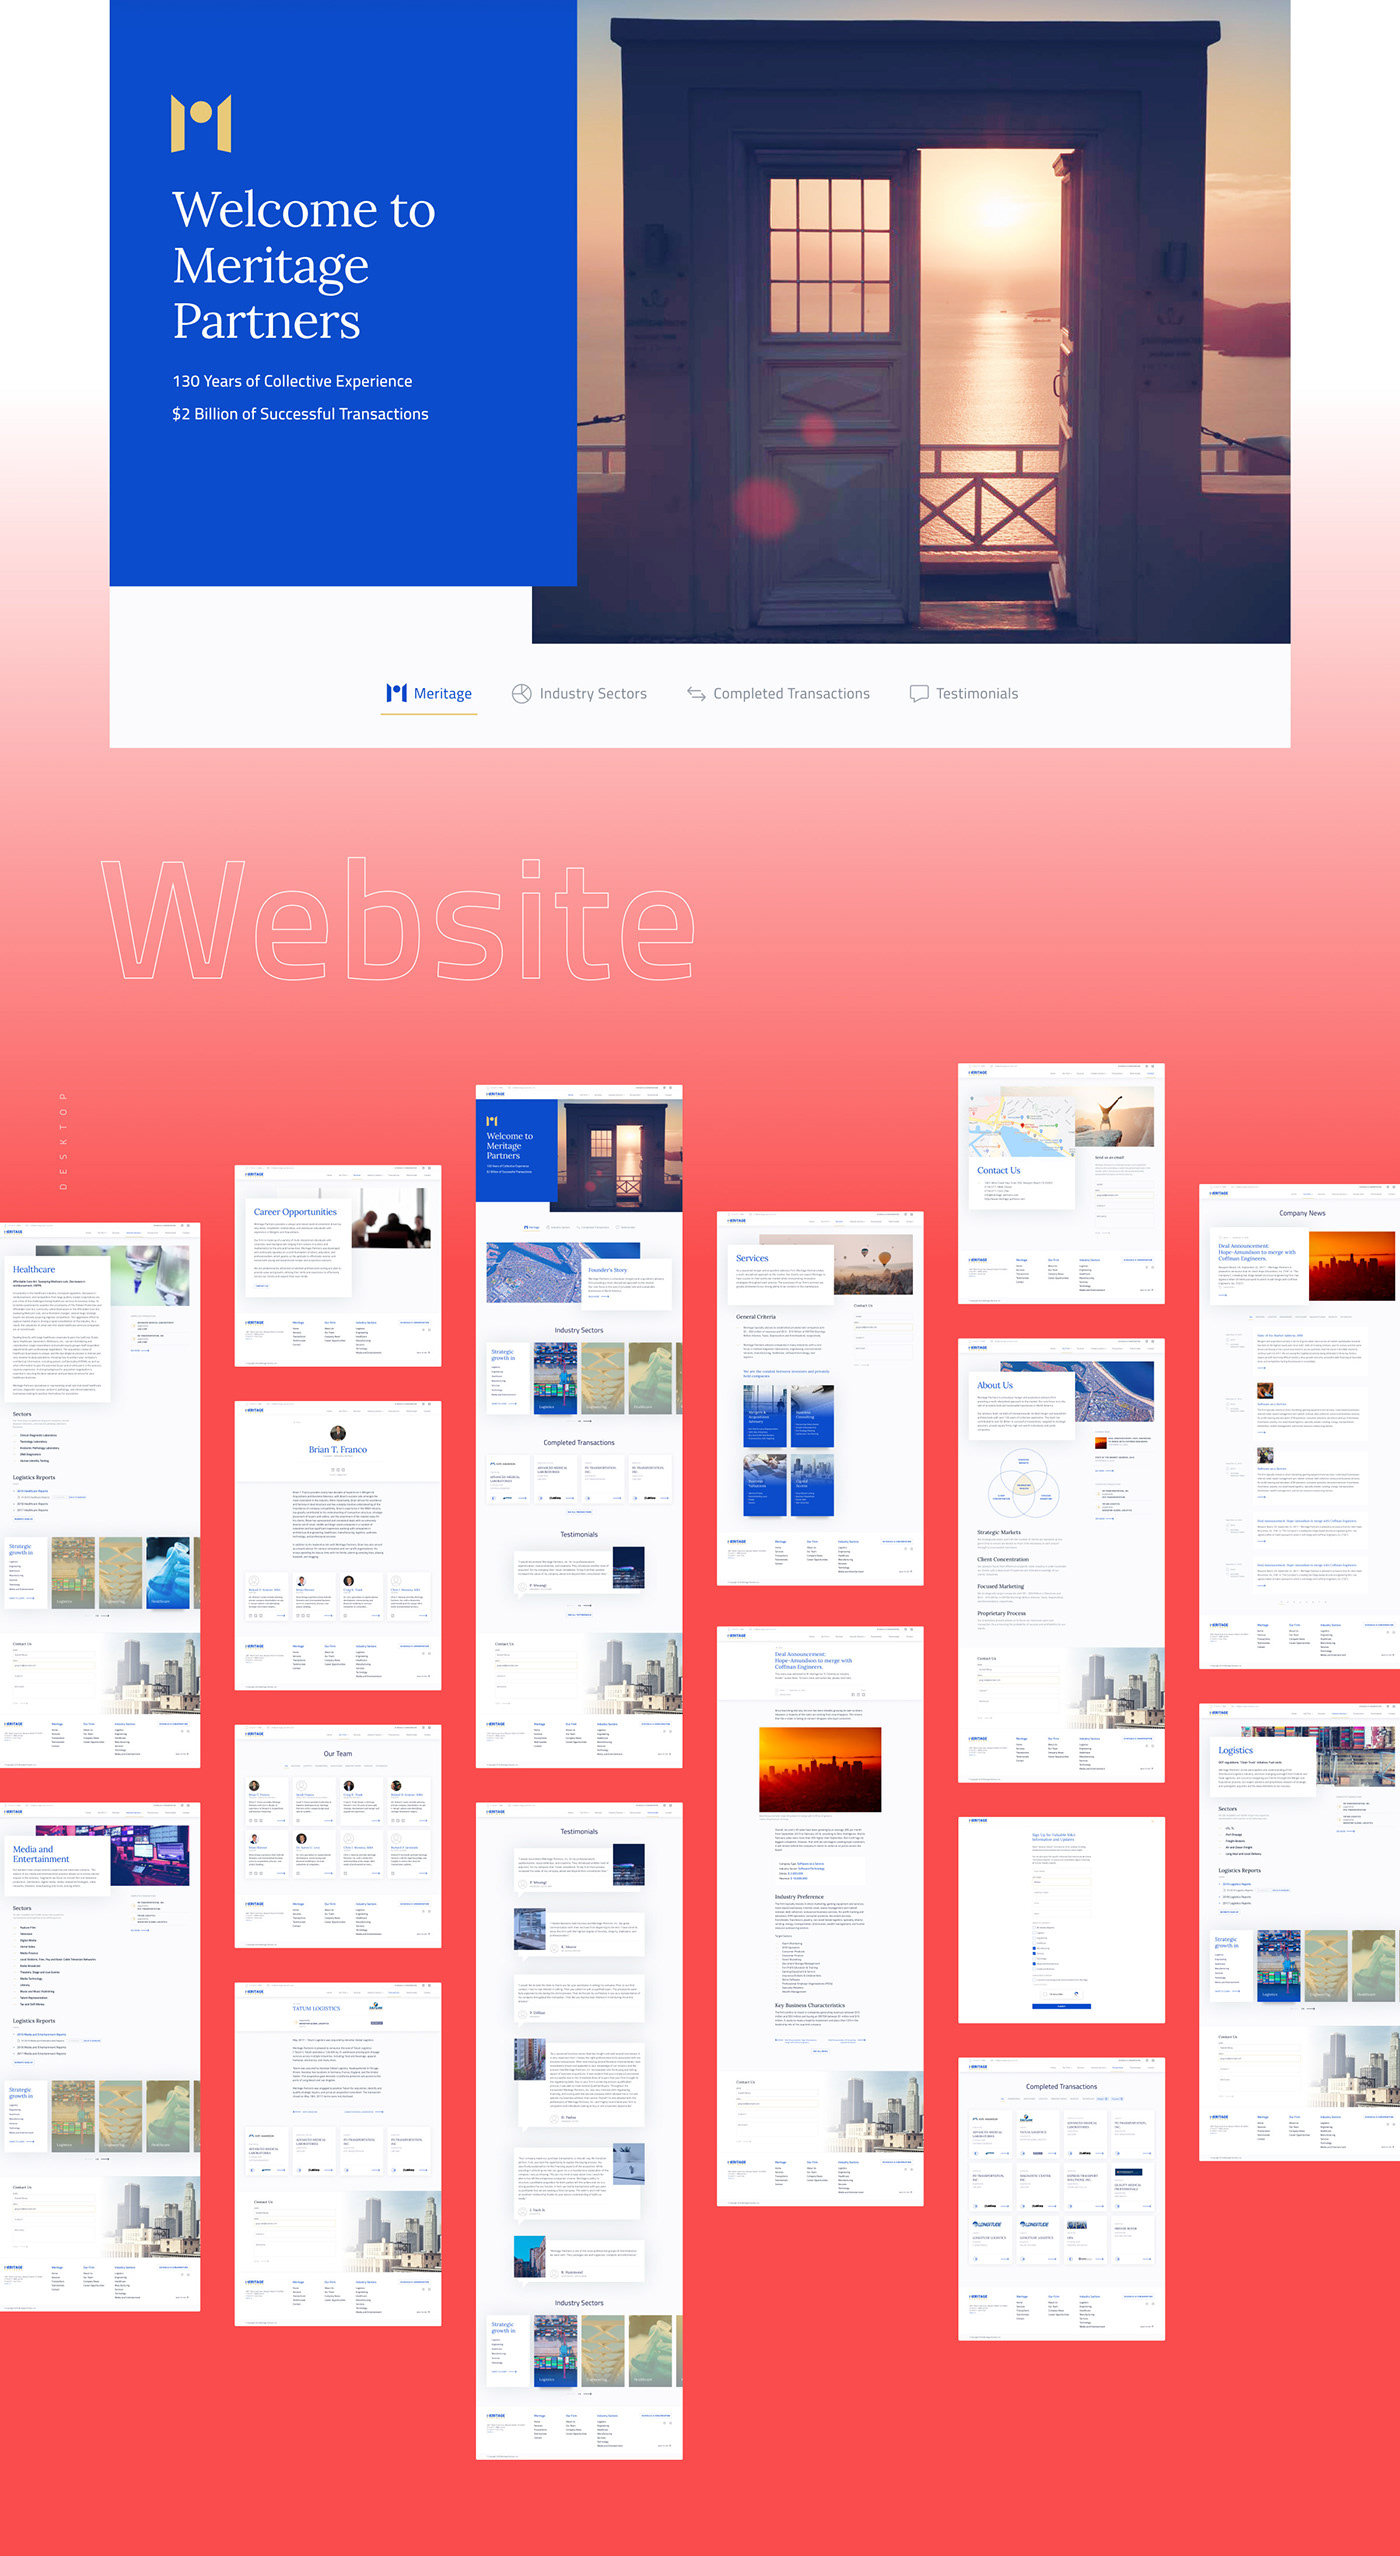 Website rebranding design. Tiles of desktop screens